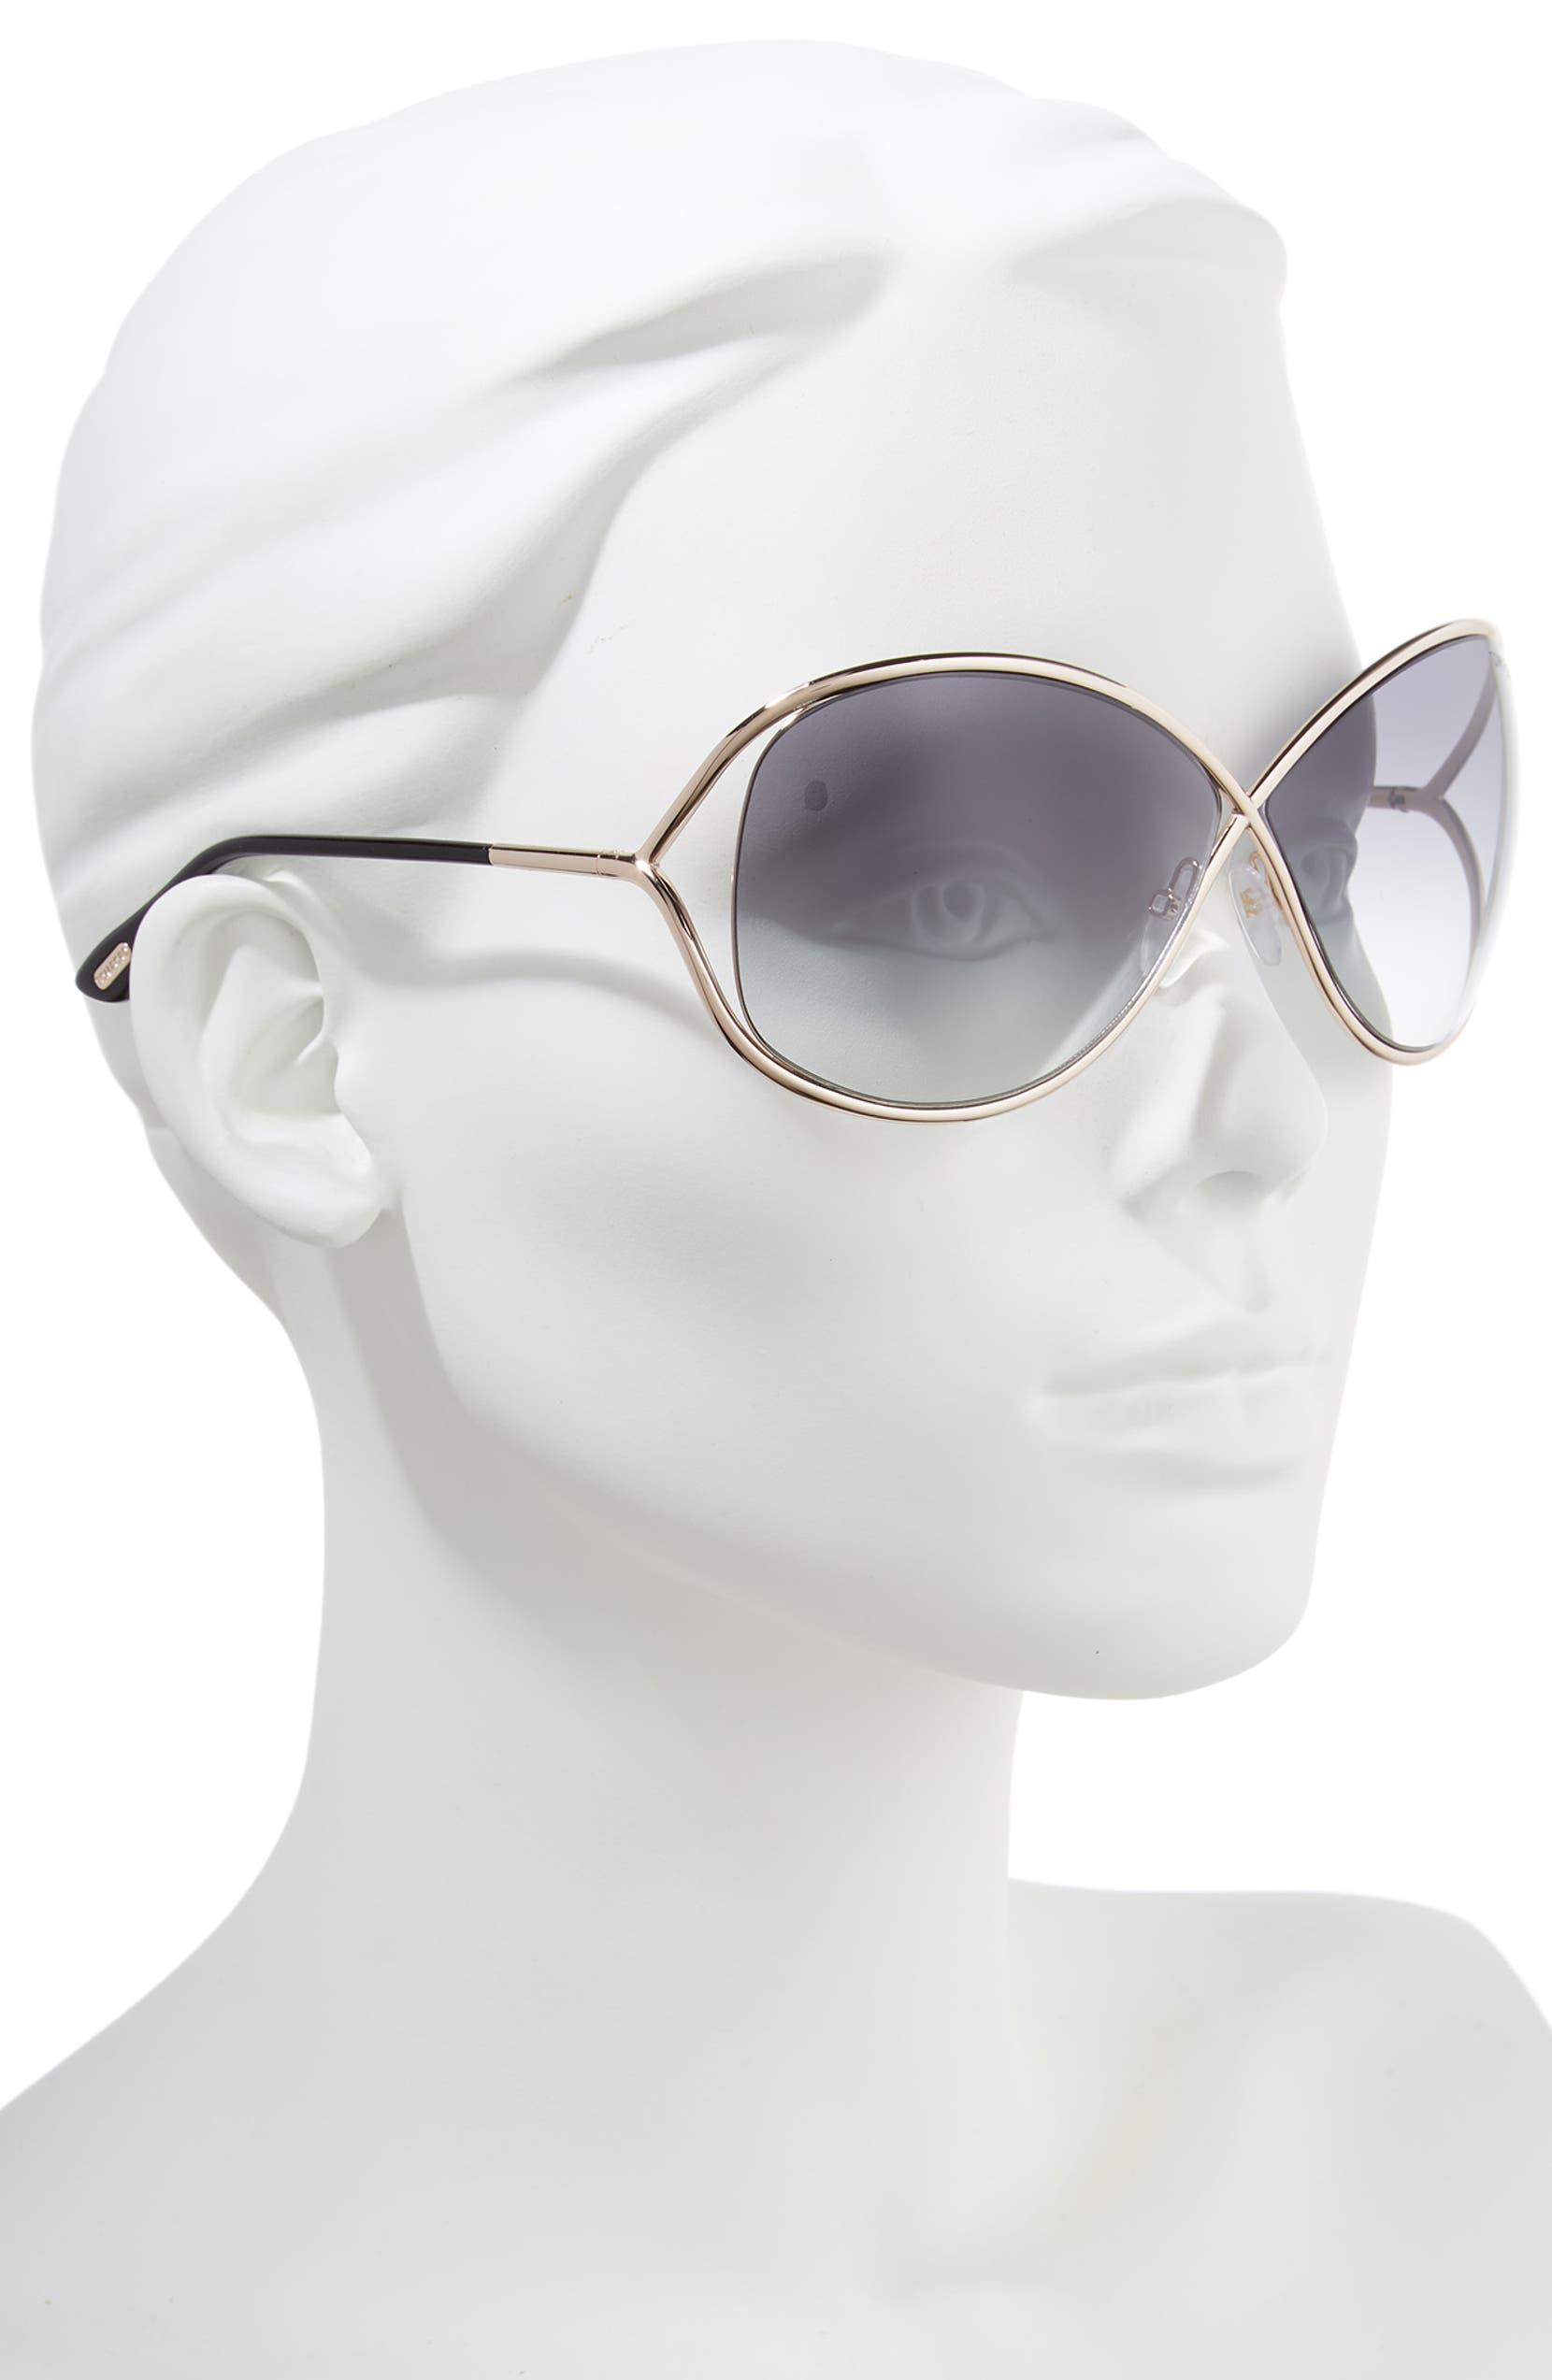 5c235f5699a8 Tom Ford Miranda 68mm Open Temple Oversize Metal Sunglasses